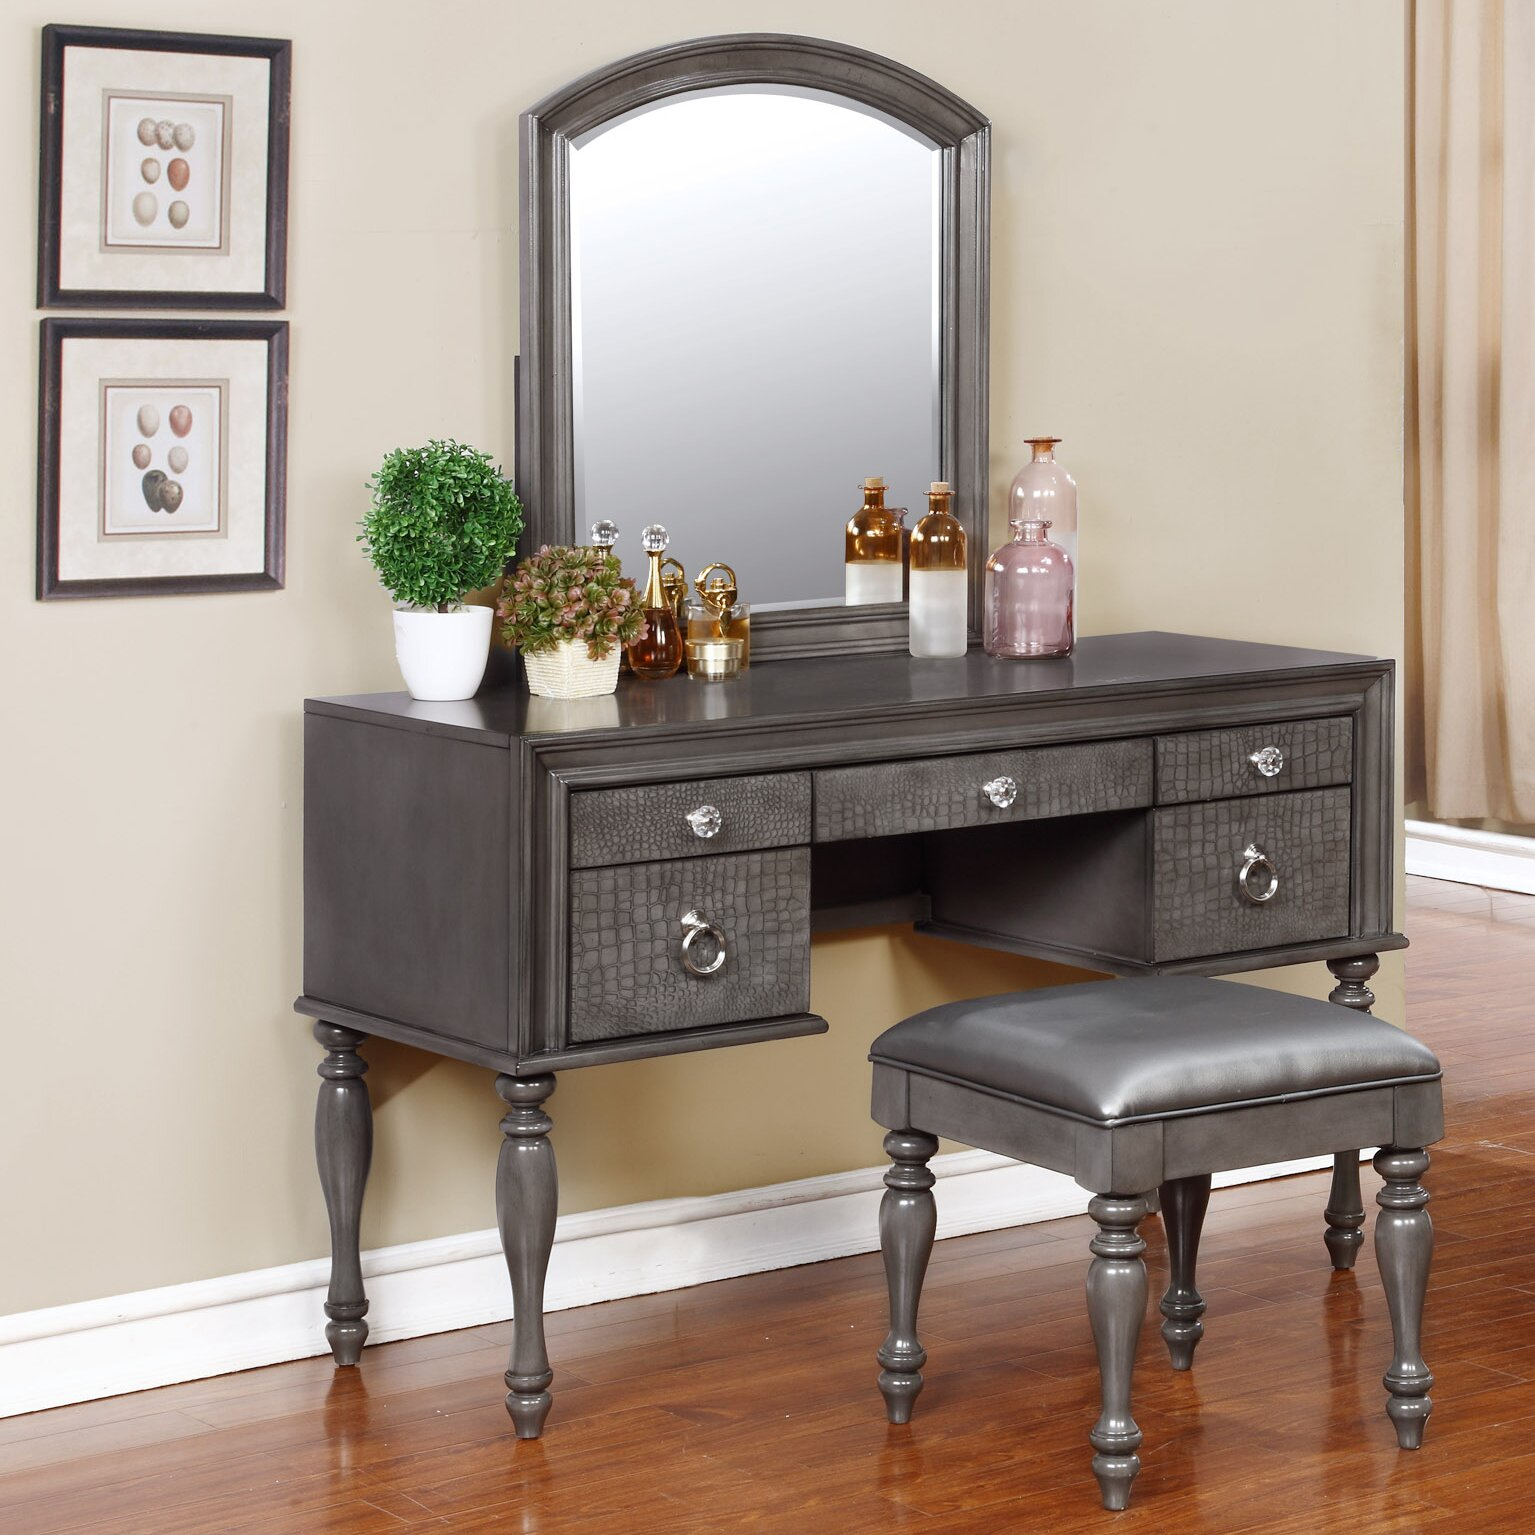 Avalon furniture glam style vanity set with mirror for Mirror vanity